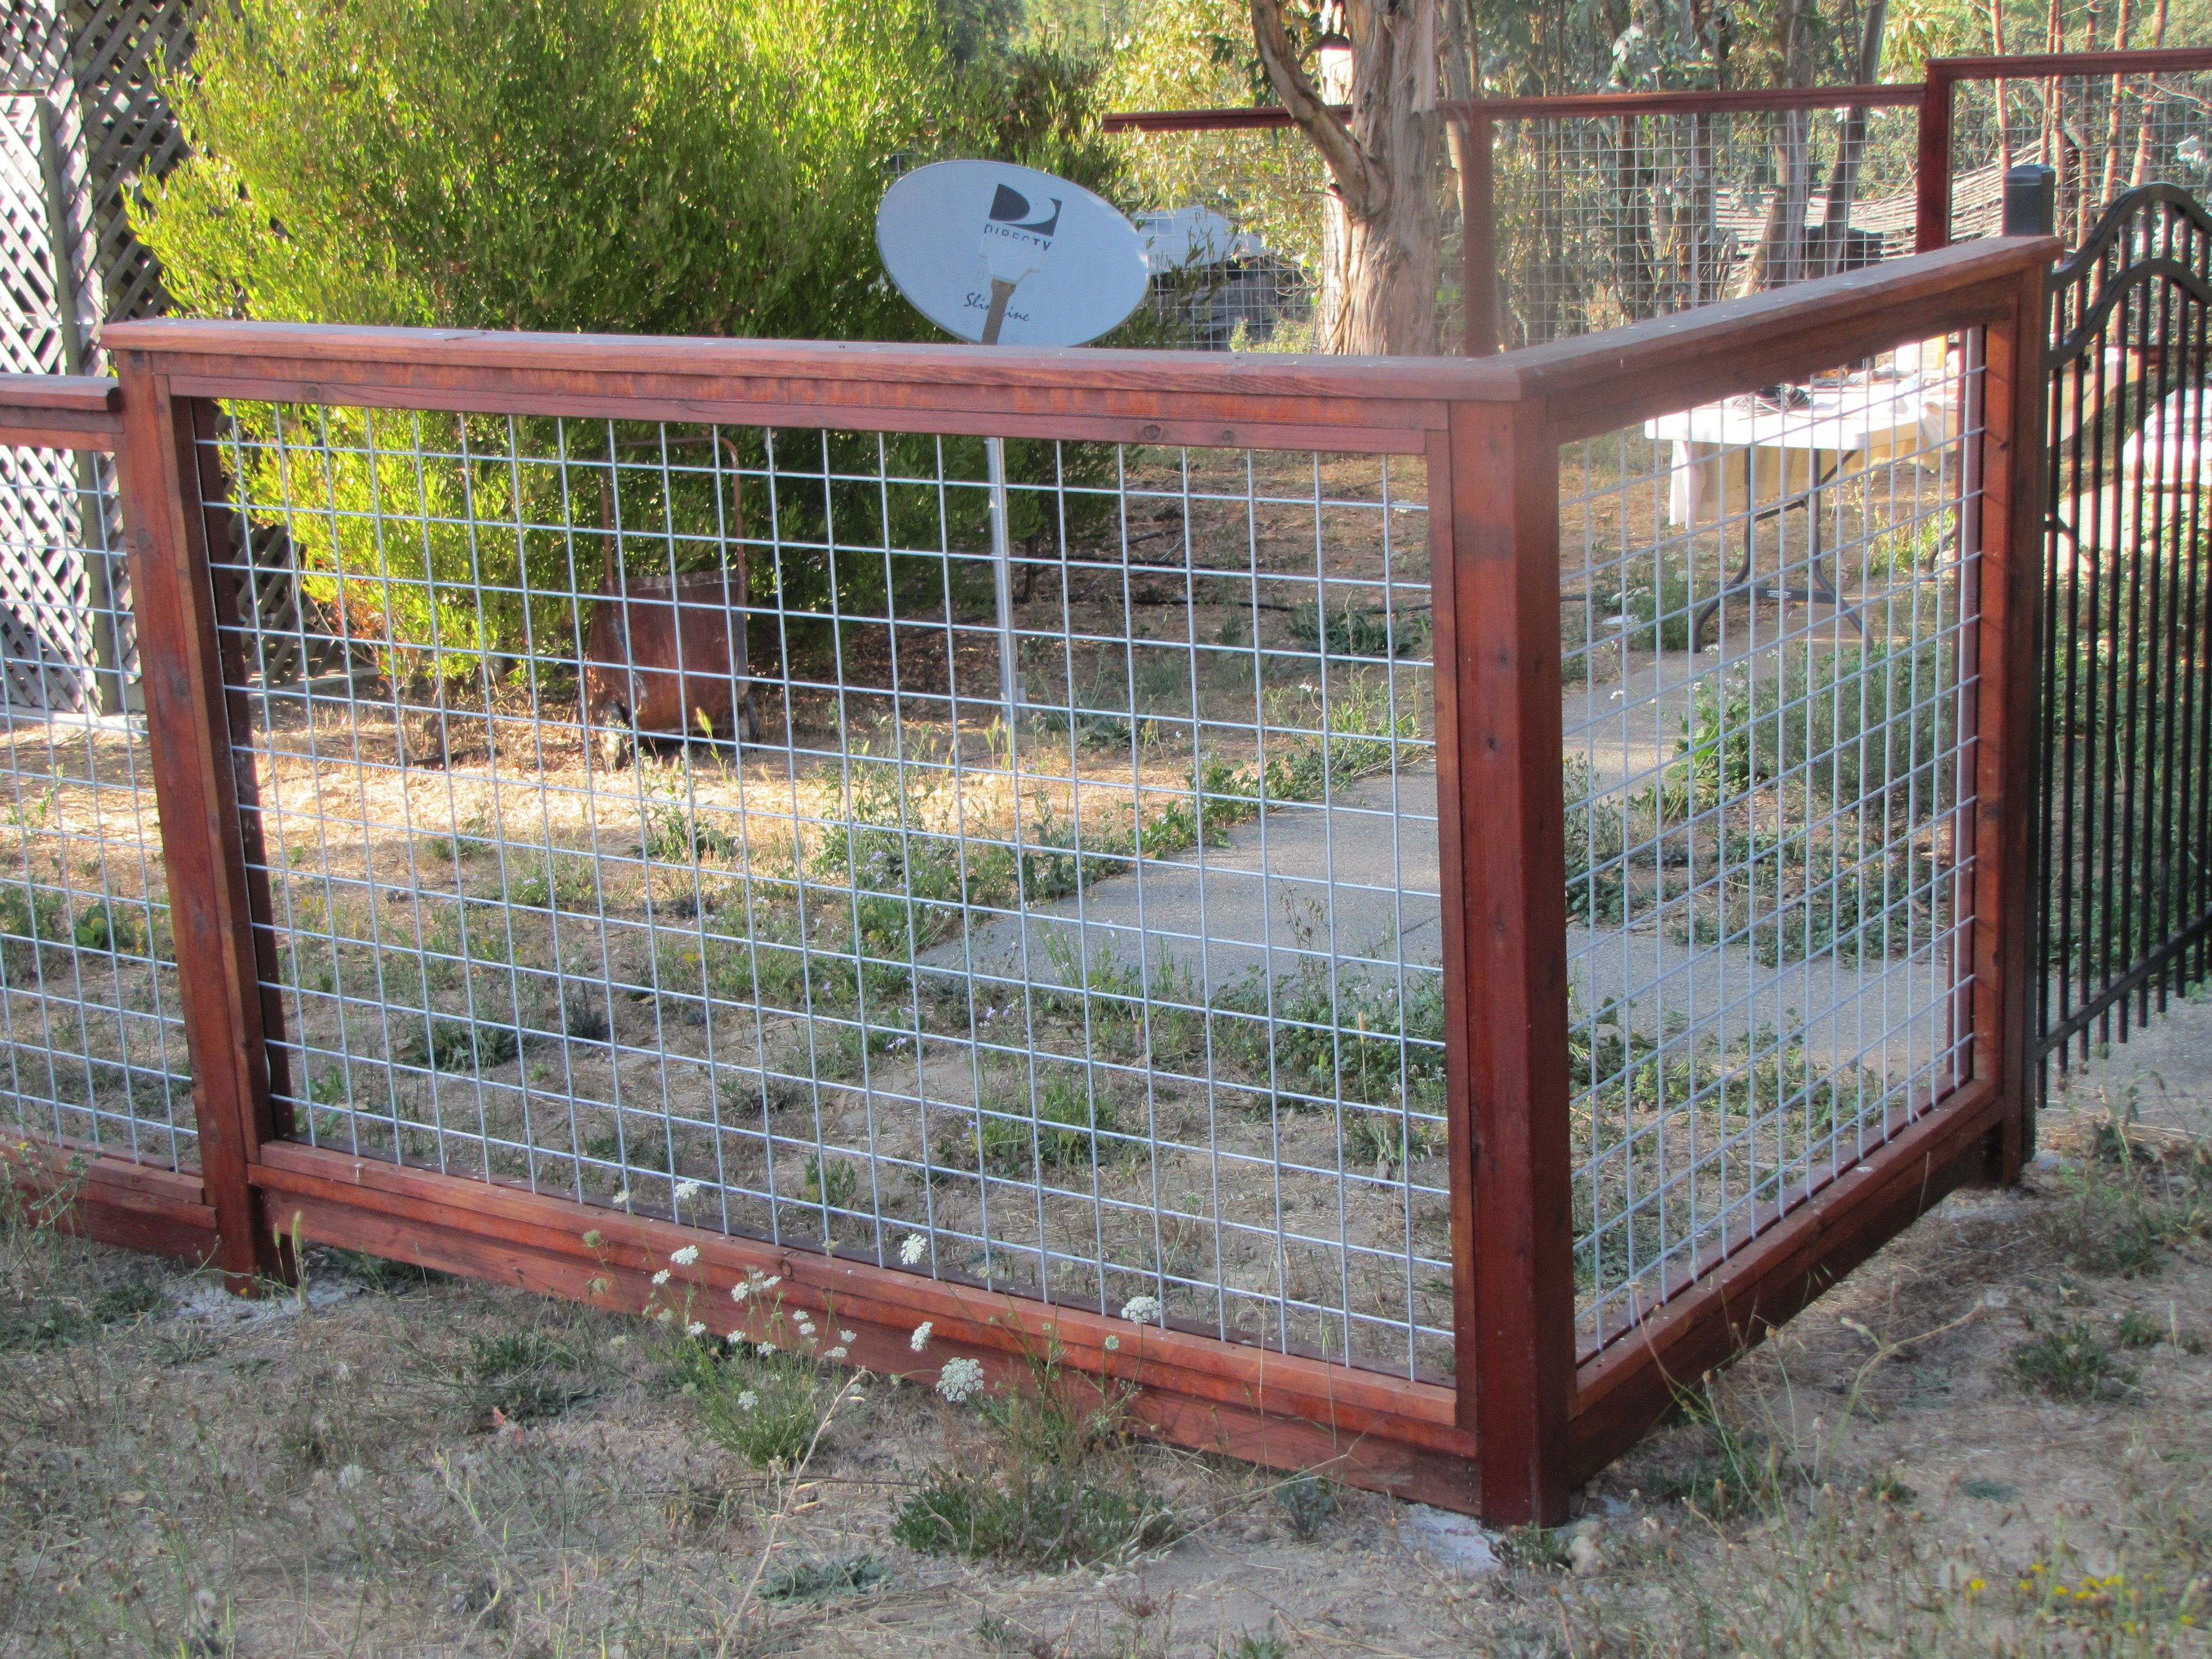 Engaging Fence Panel Hog Wire Fence Panels San Diego How To Cut Rhpinterest Com Cattle Panel Greenhouse Cattle Panel Greenhouse Cutting Wire Cattle Panels Wire Center